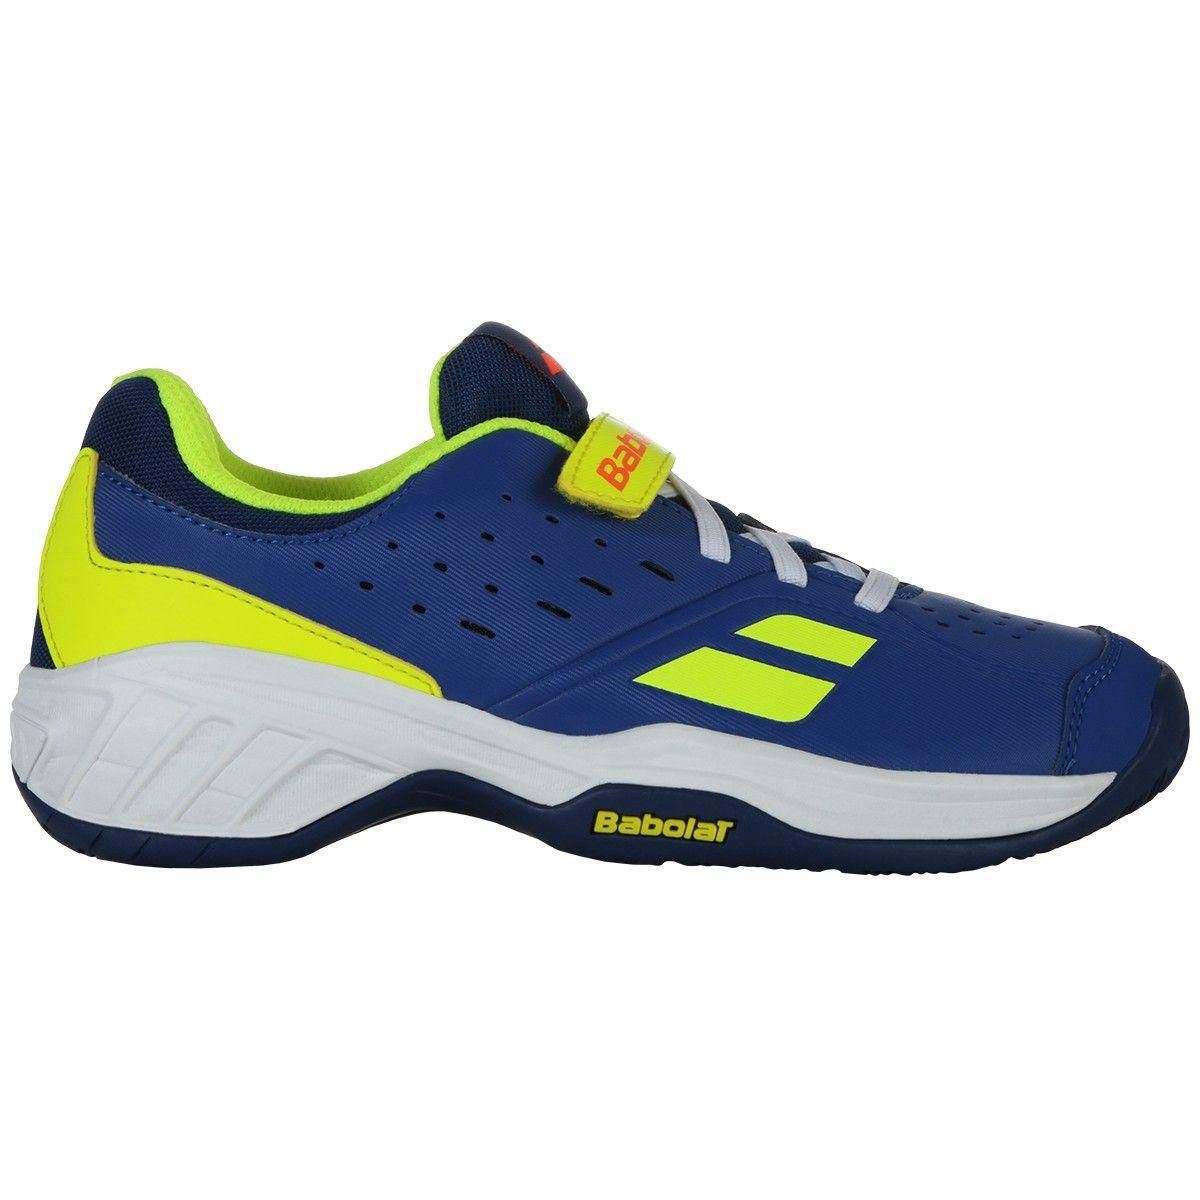 Tênis Babolat Pulsion All Court Kid Azul e Amarelo